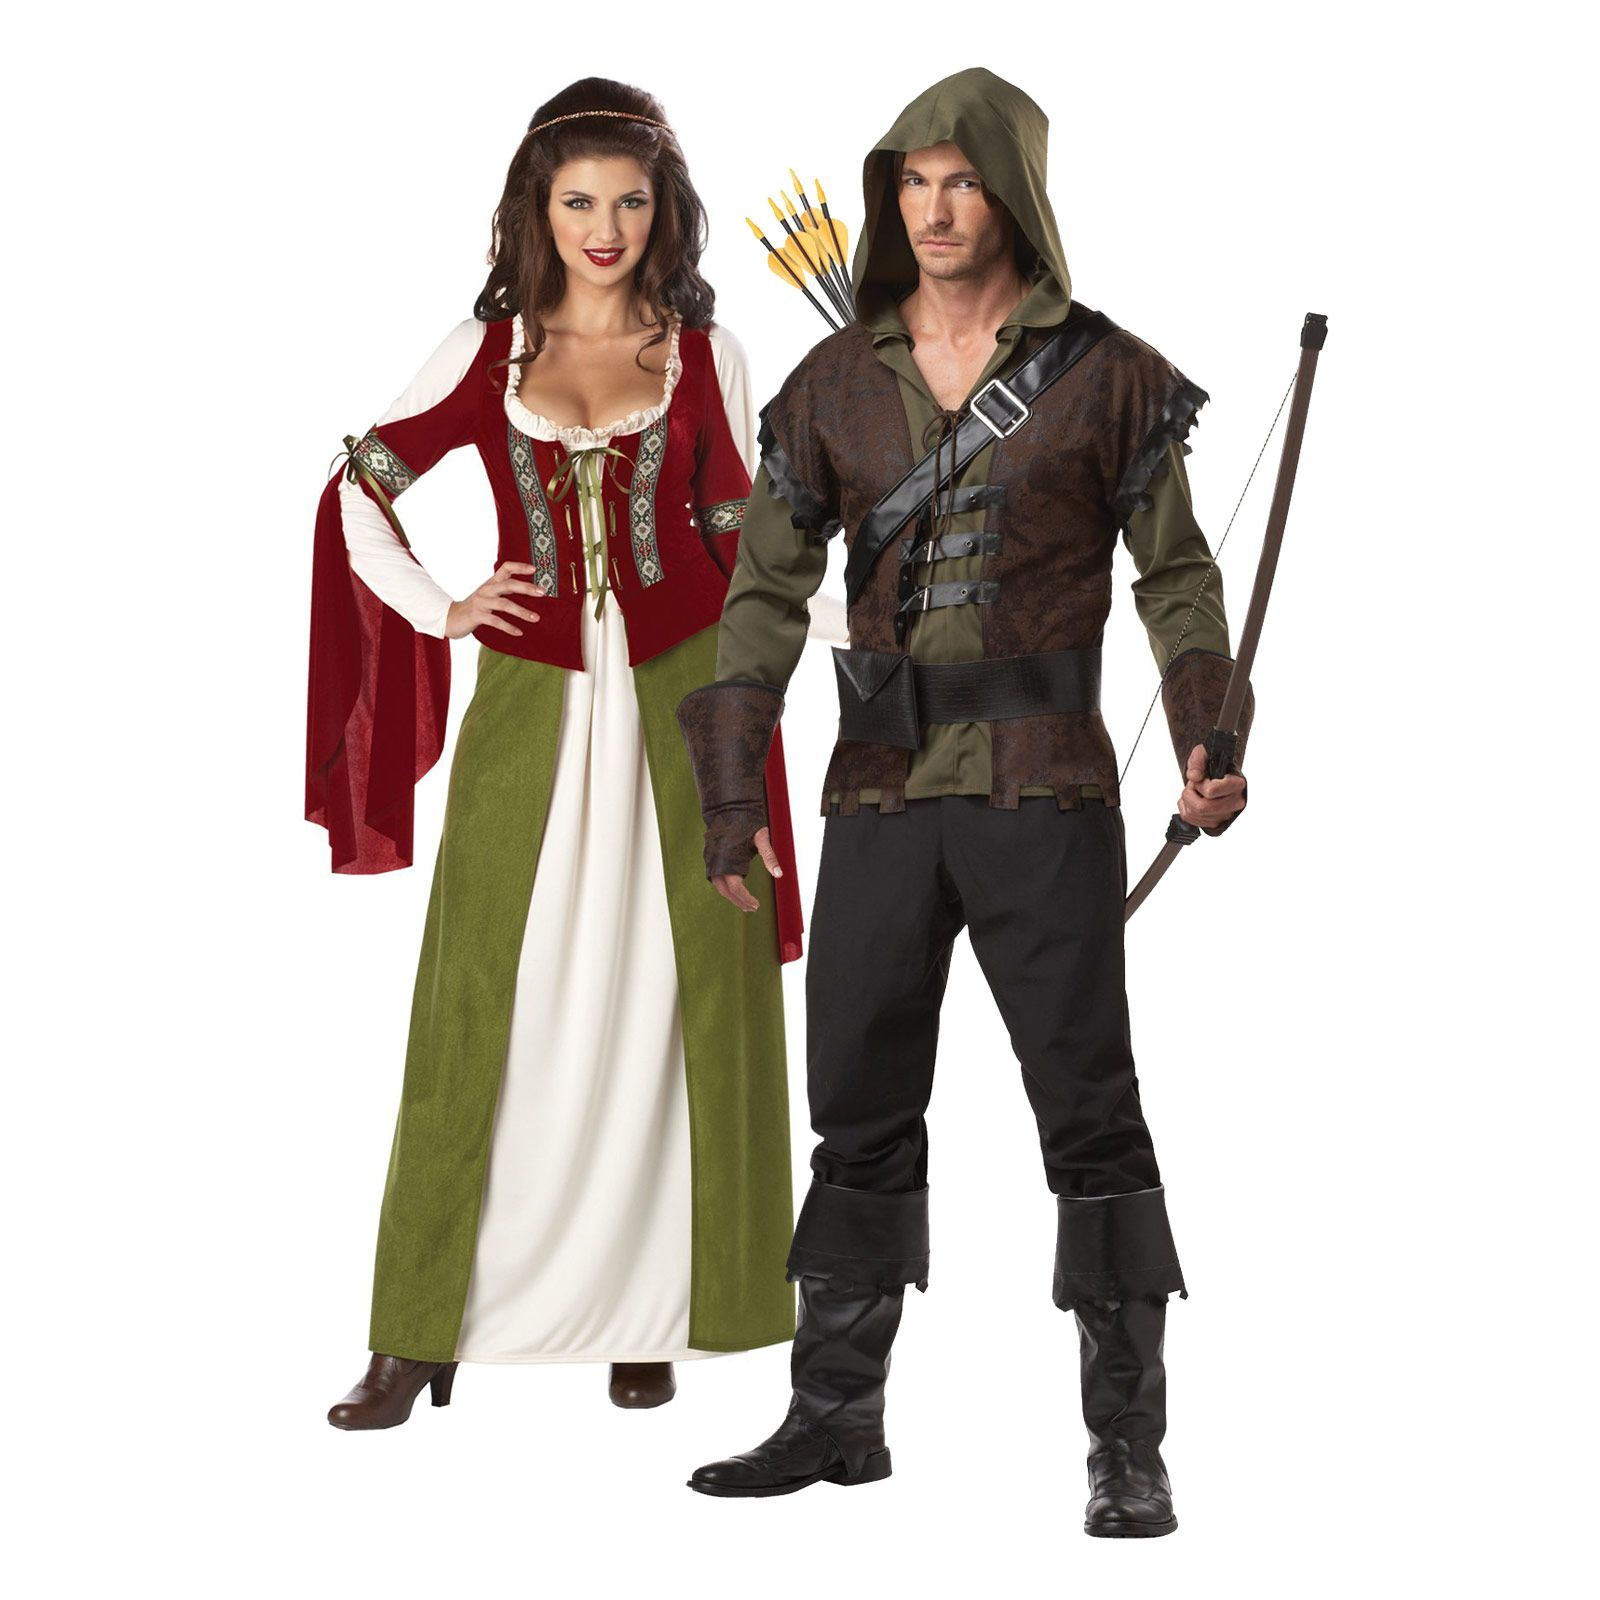 Robin Hood & Maid Marion Halloween couples costume idea | Top ...